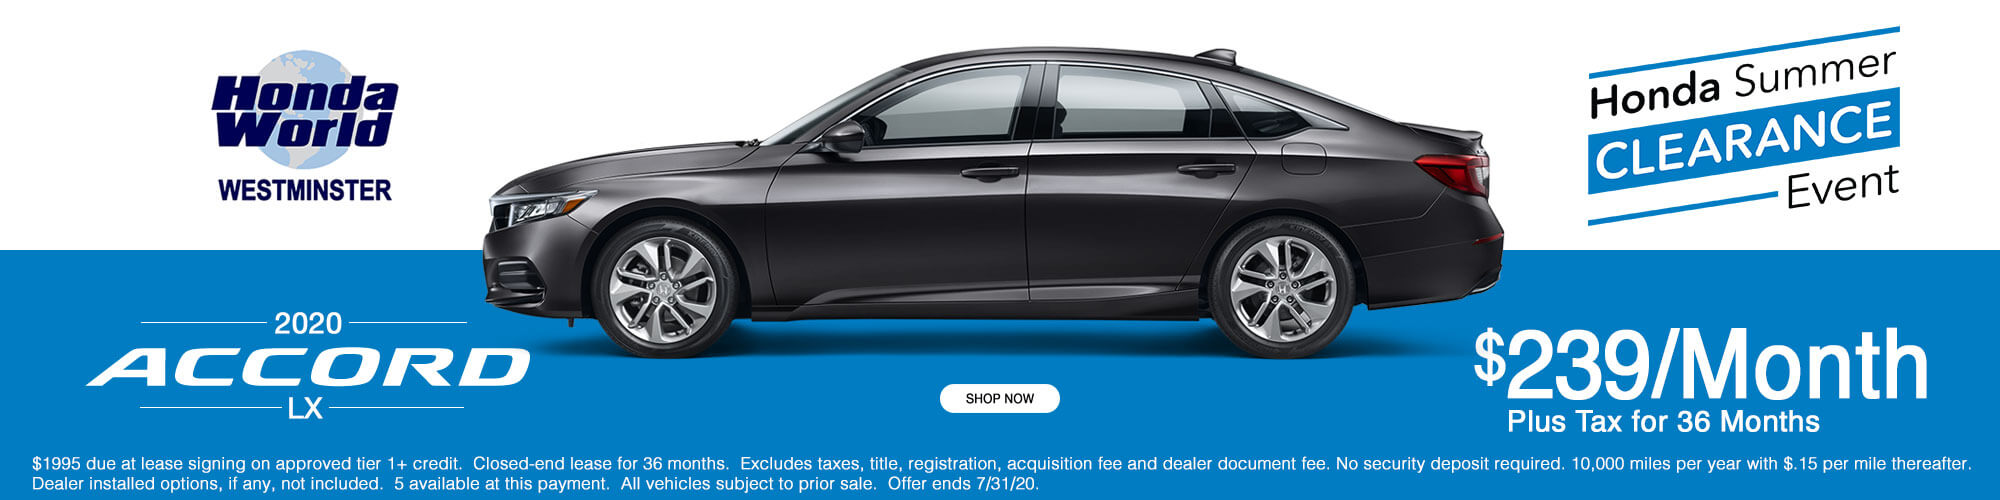 2020 Honda Accord LX Lease Offer $239 a month